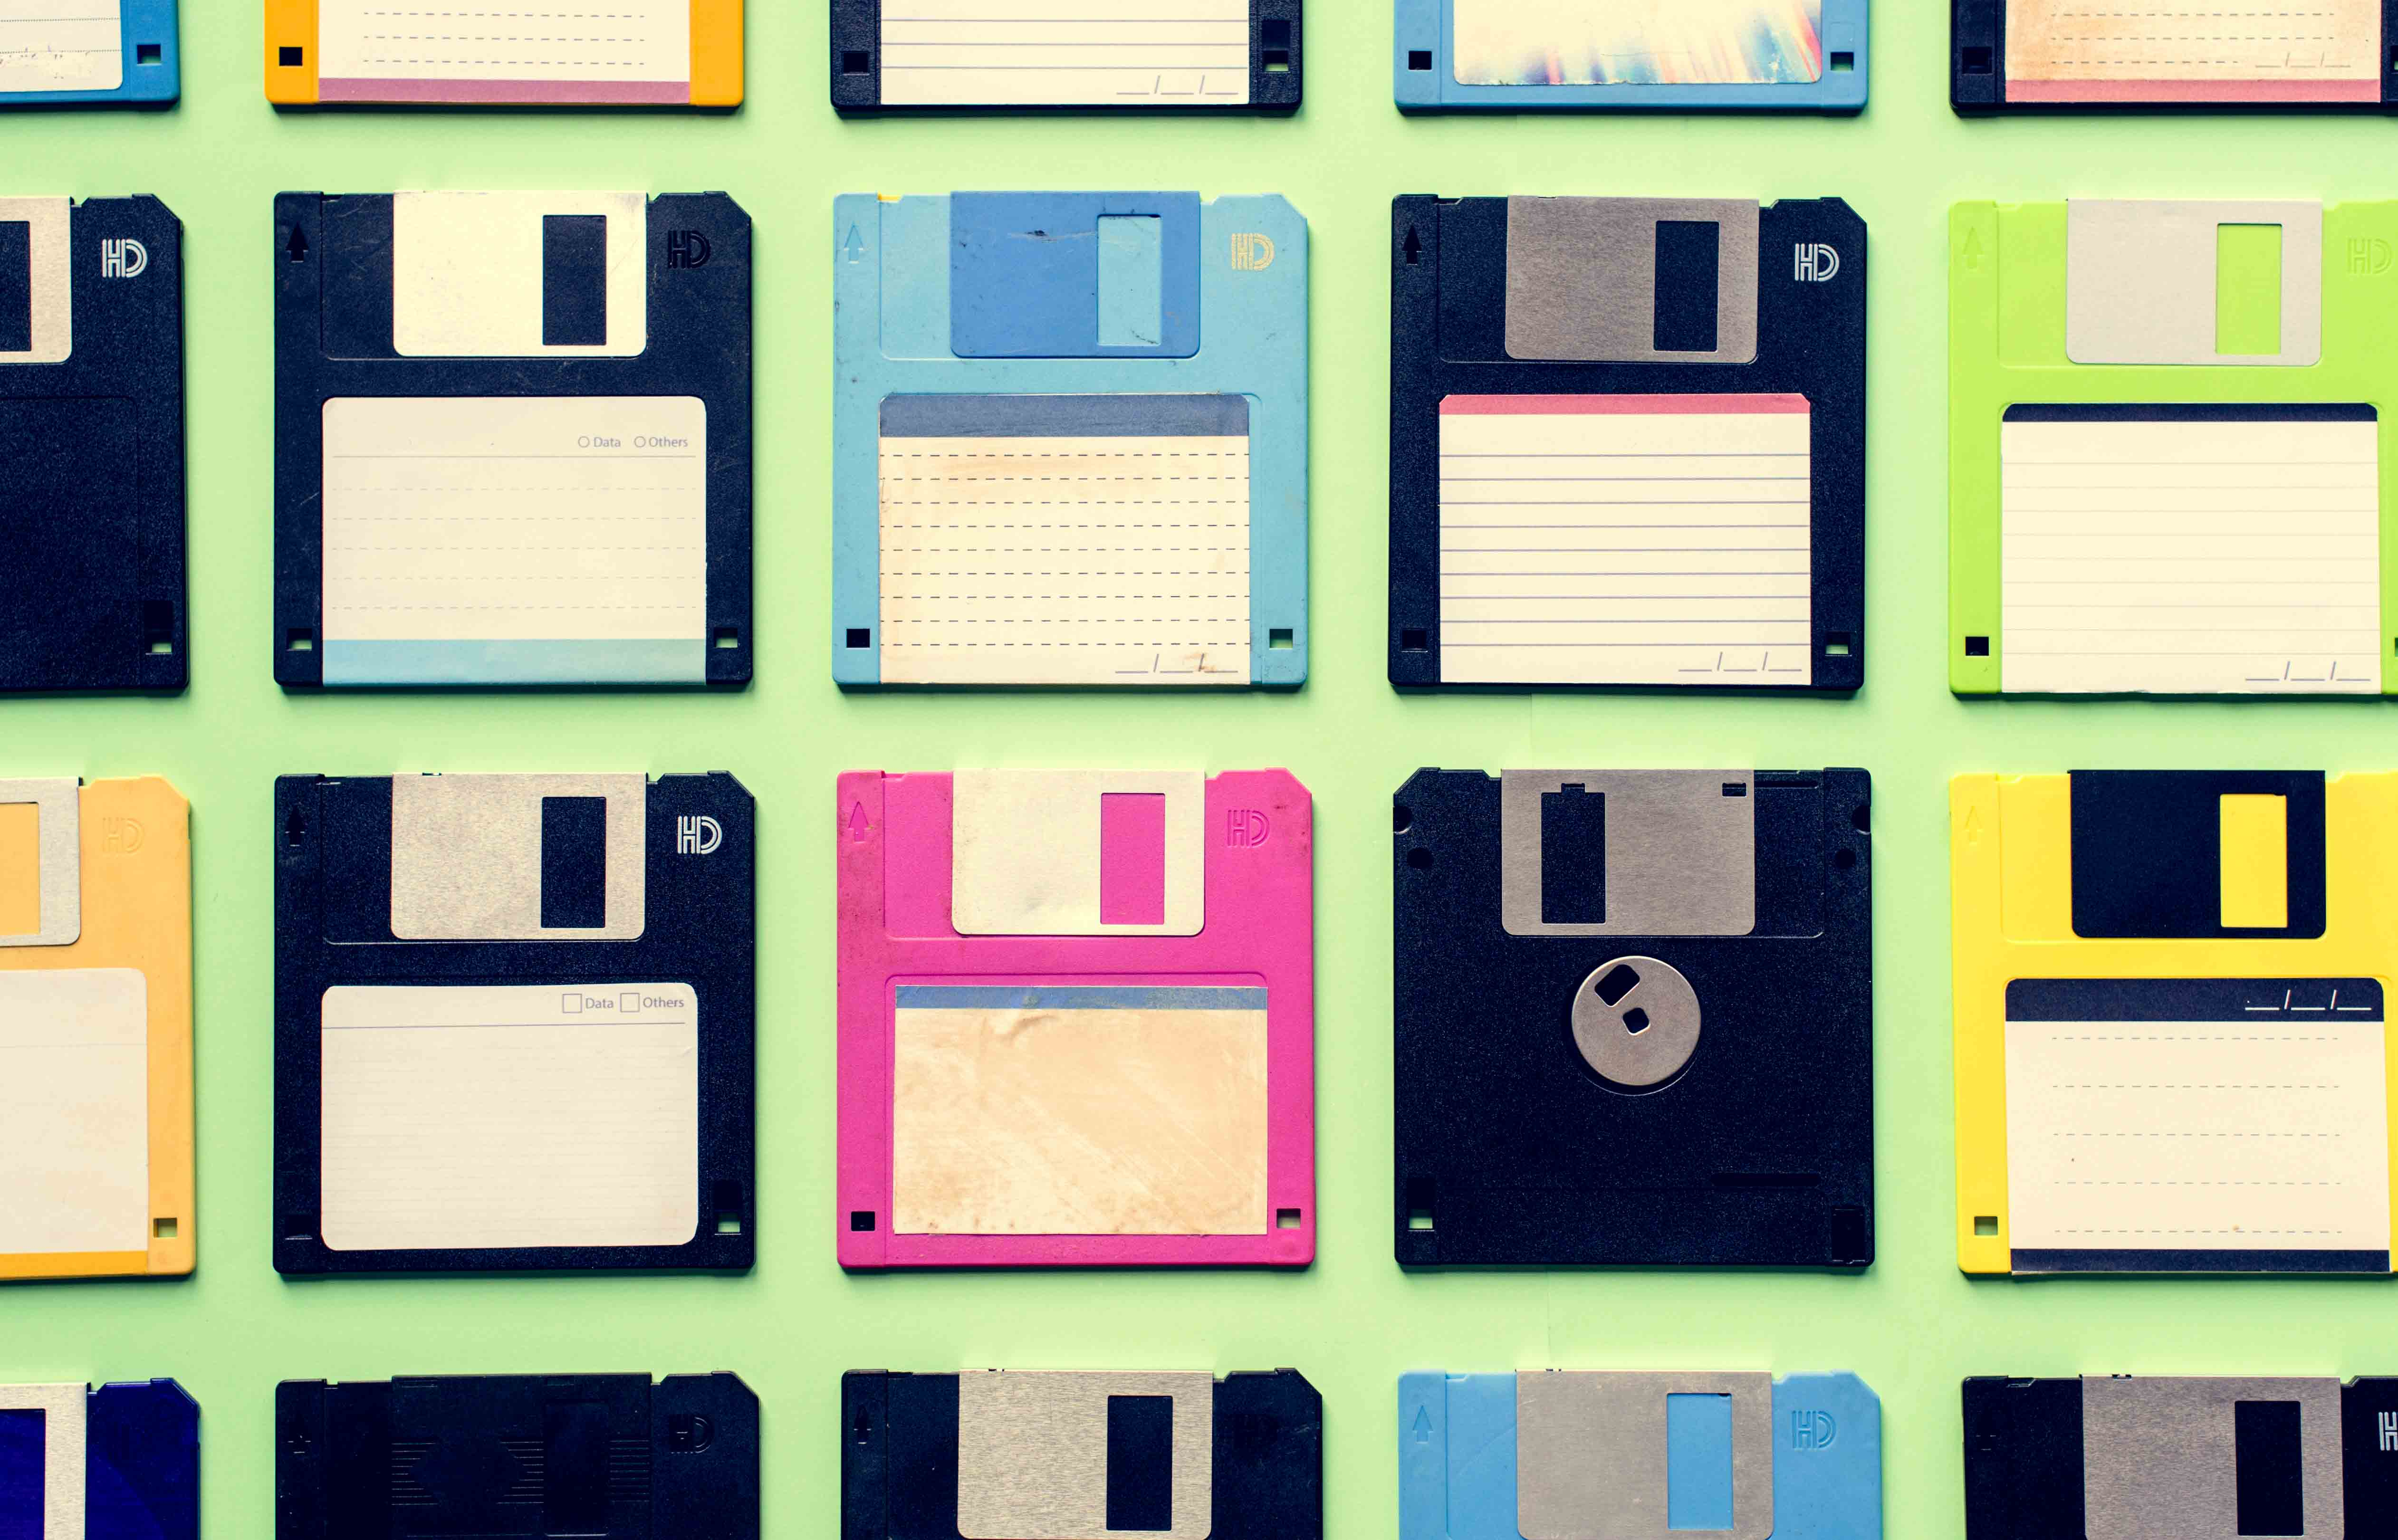 A group of diskettes arranged on a flat surface.